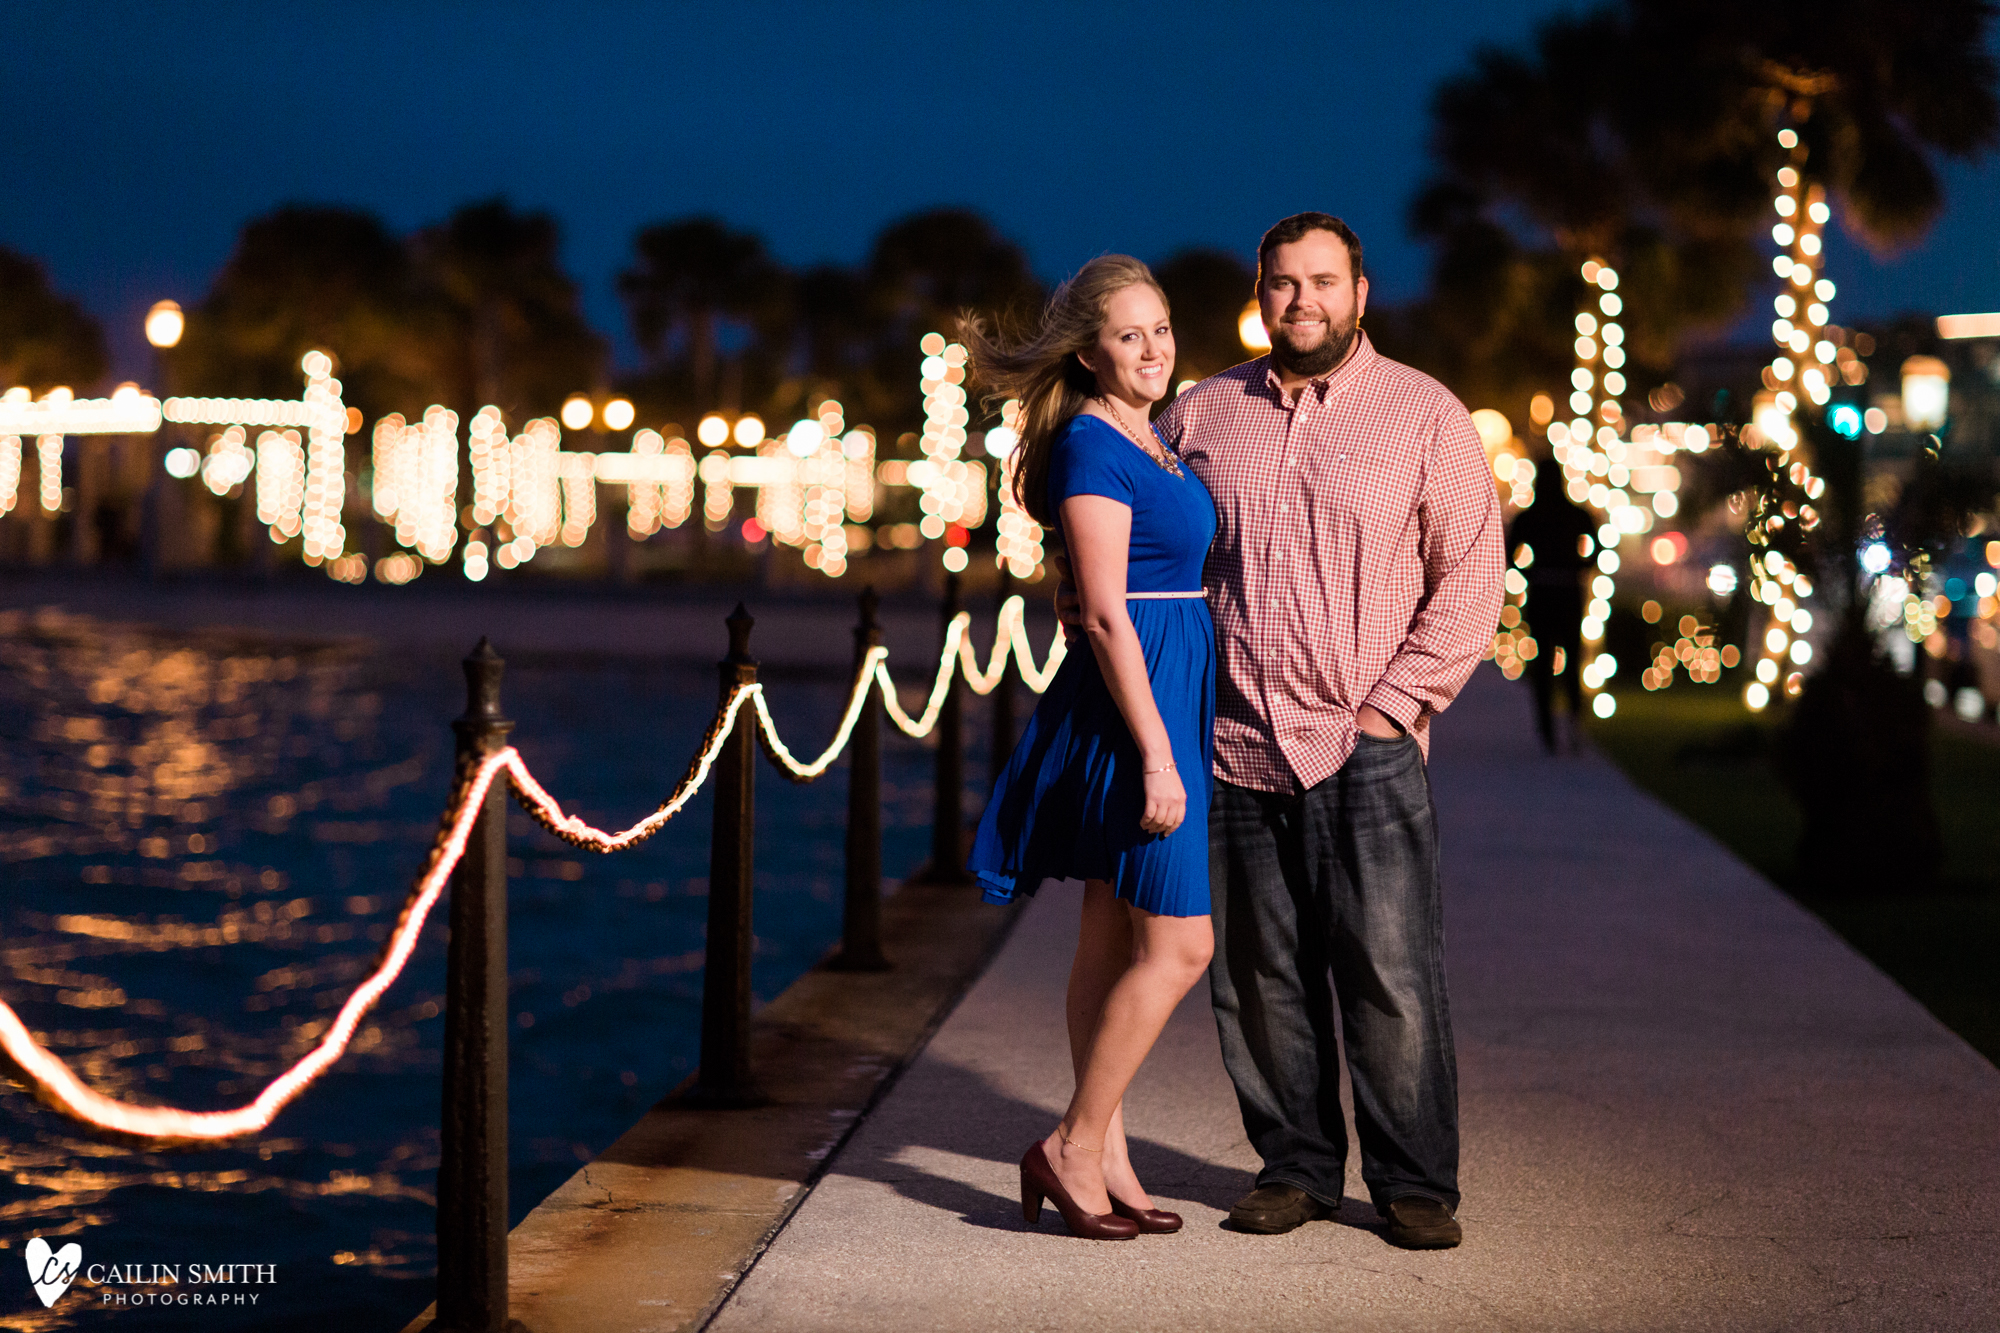 Shari_Brent_St_Augustine_Engagement_Photography_027.jpg